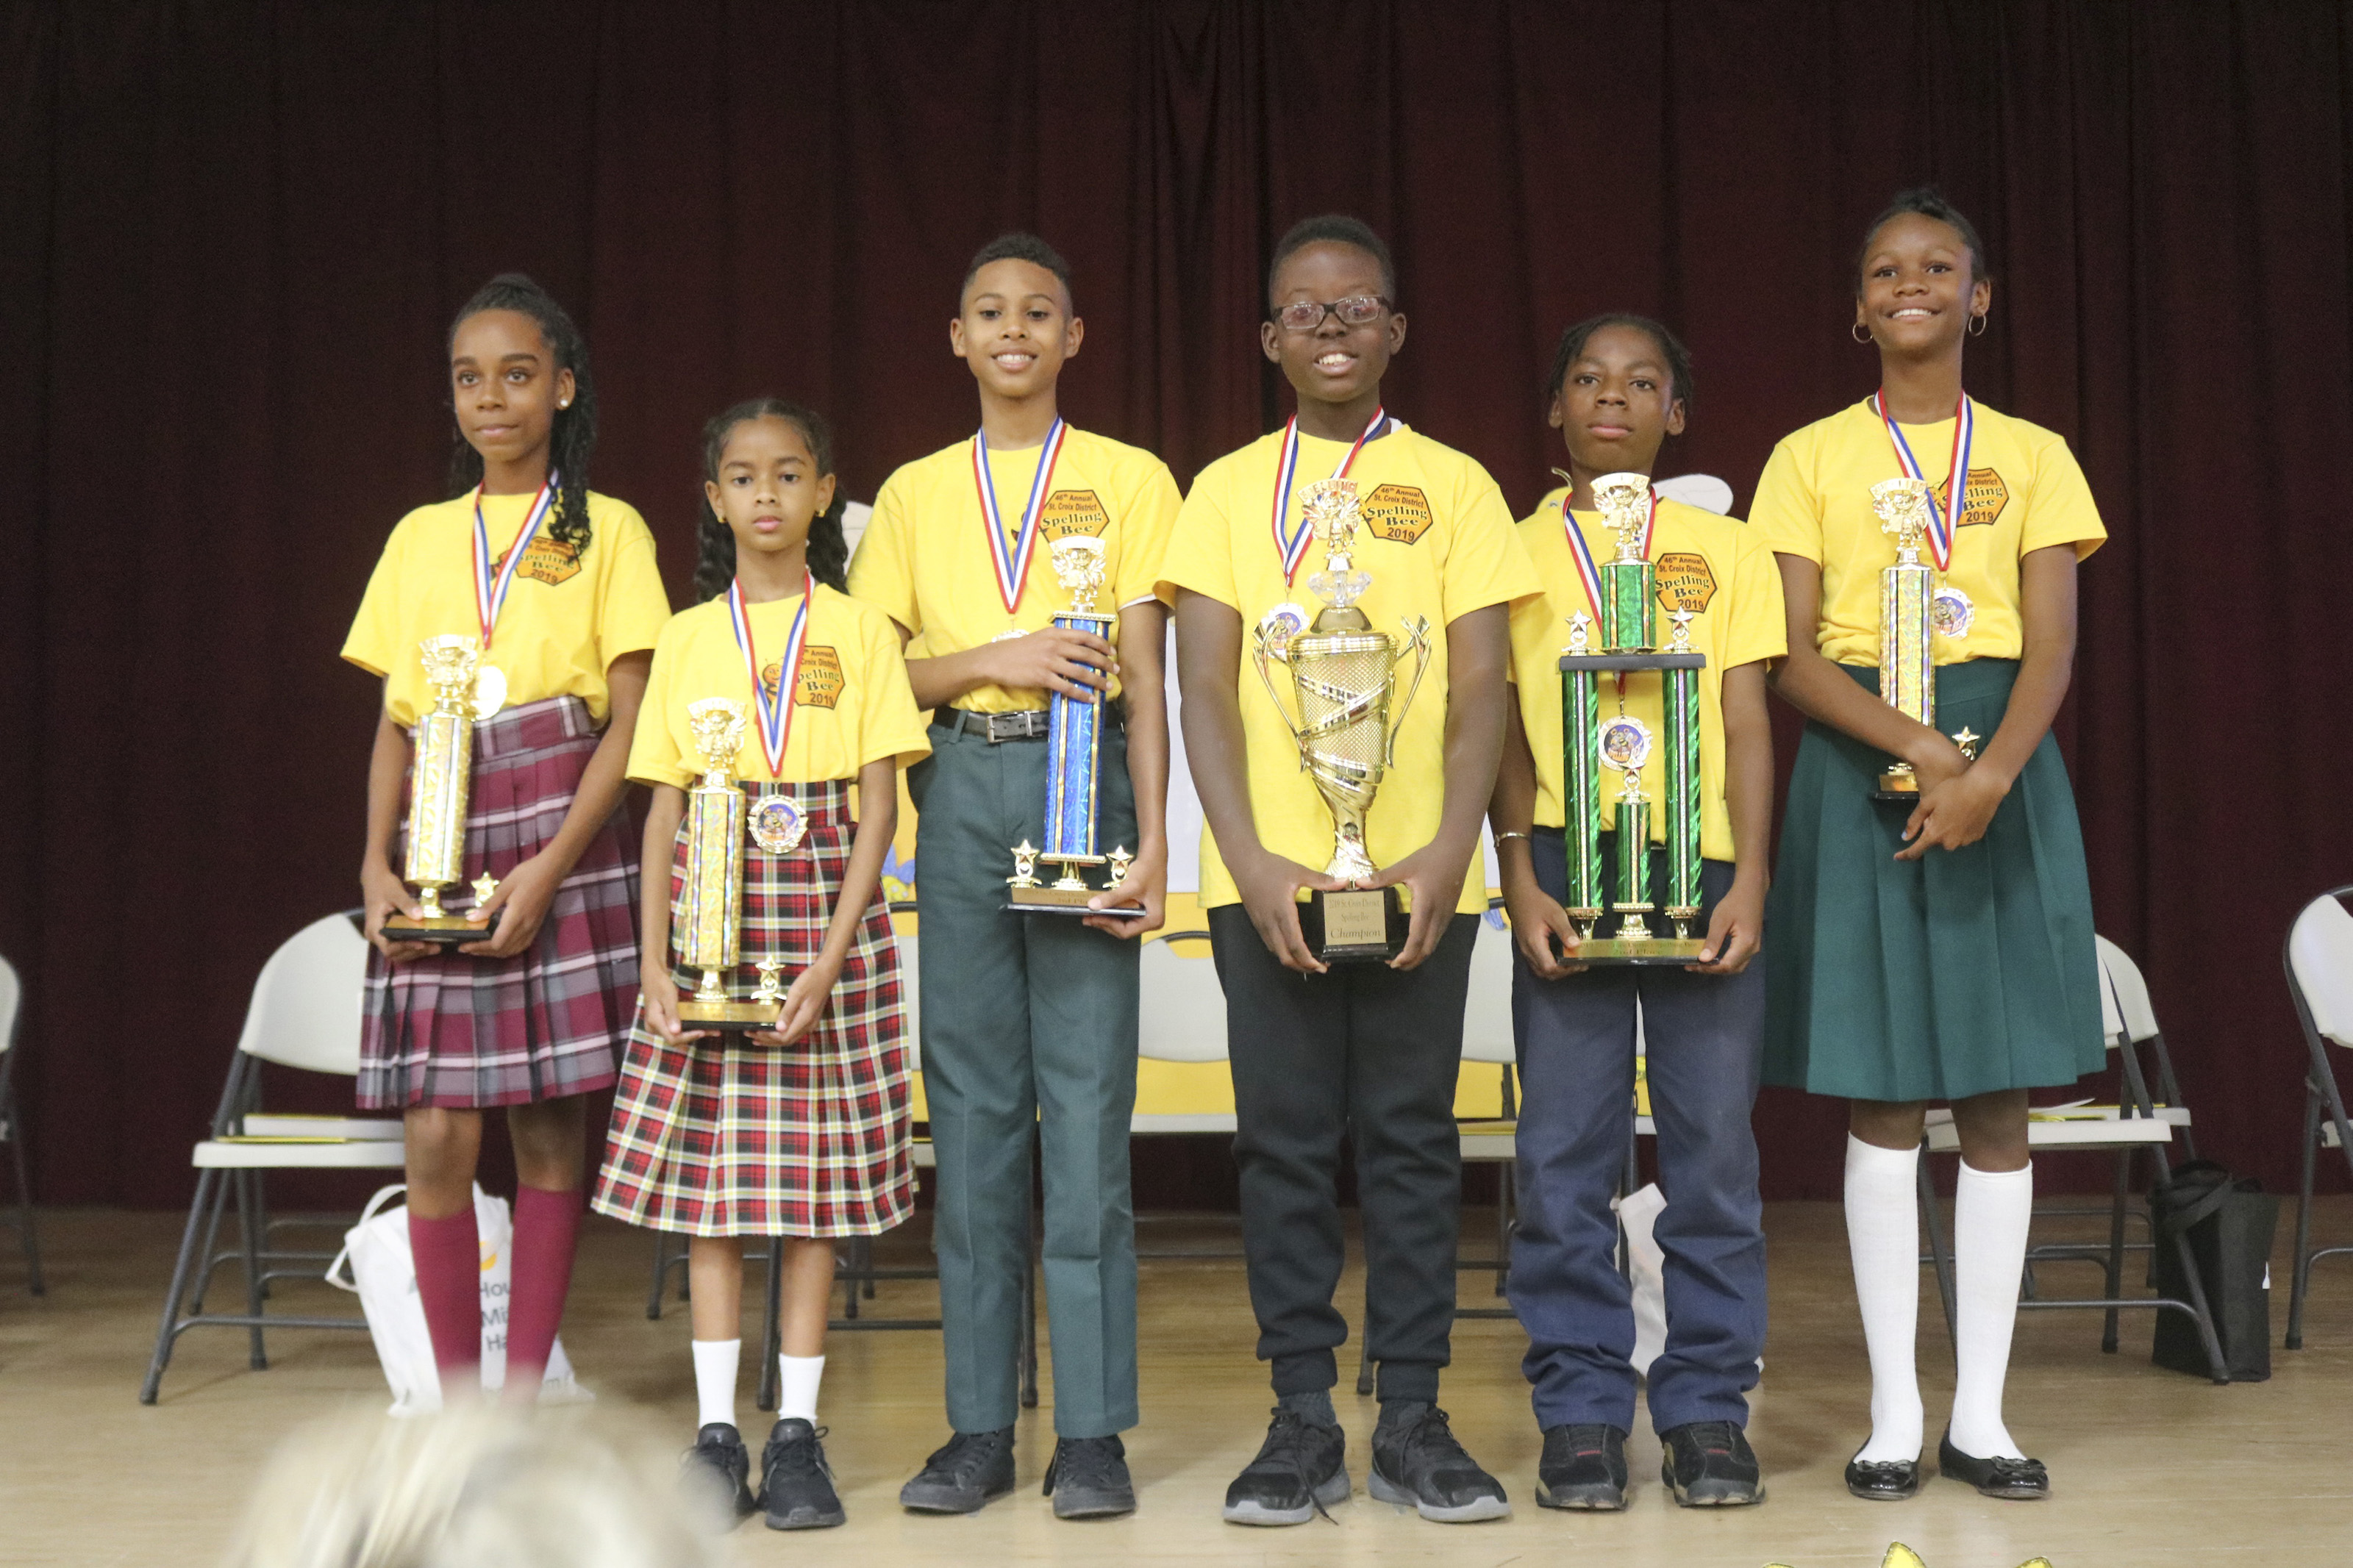 Top 6 Left to Right- Carmindy Pickering, Kayln Blackwwod, Jaden Gonzalez, Michael Atwell, Jah'Quane Benjamin and Alani Arnold .jpg